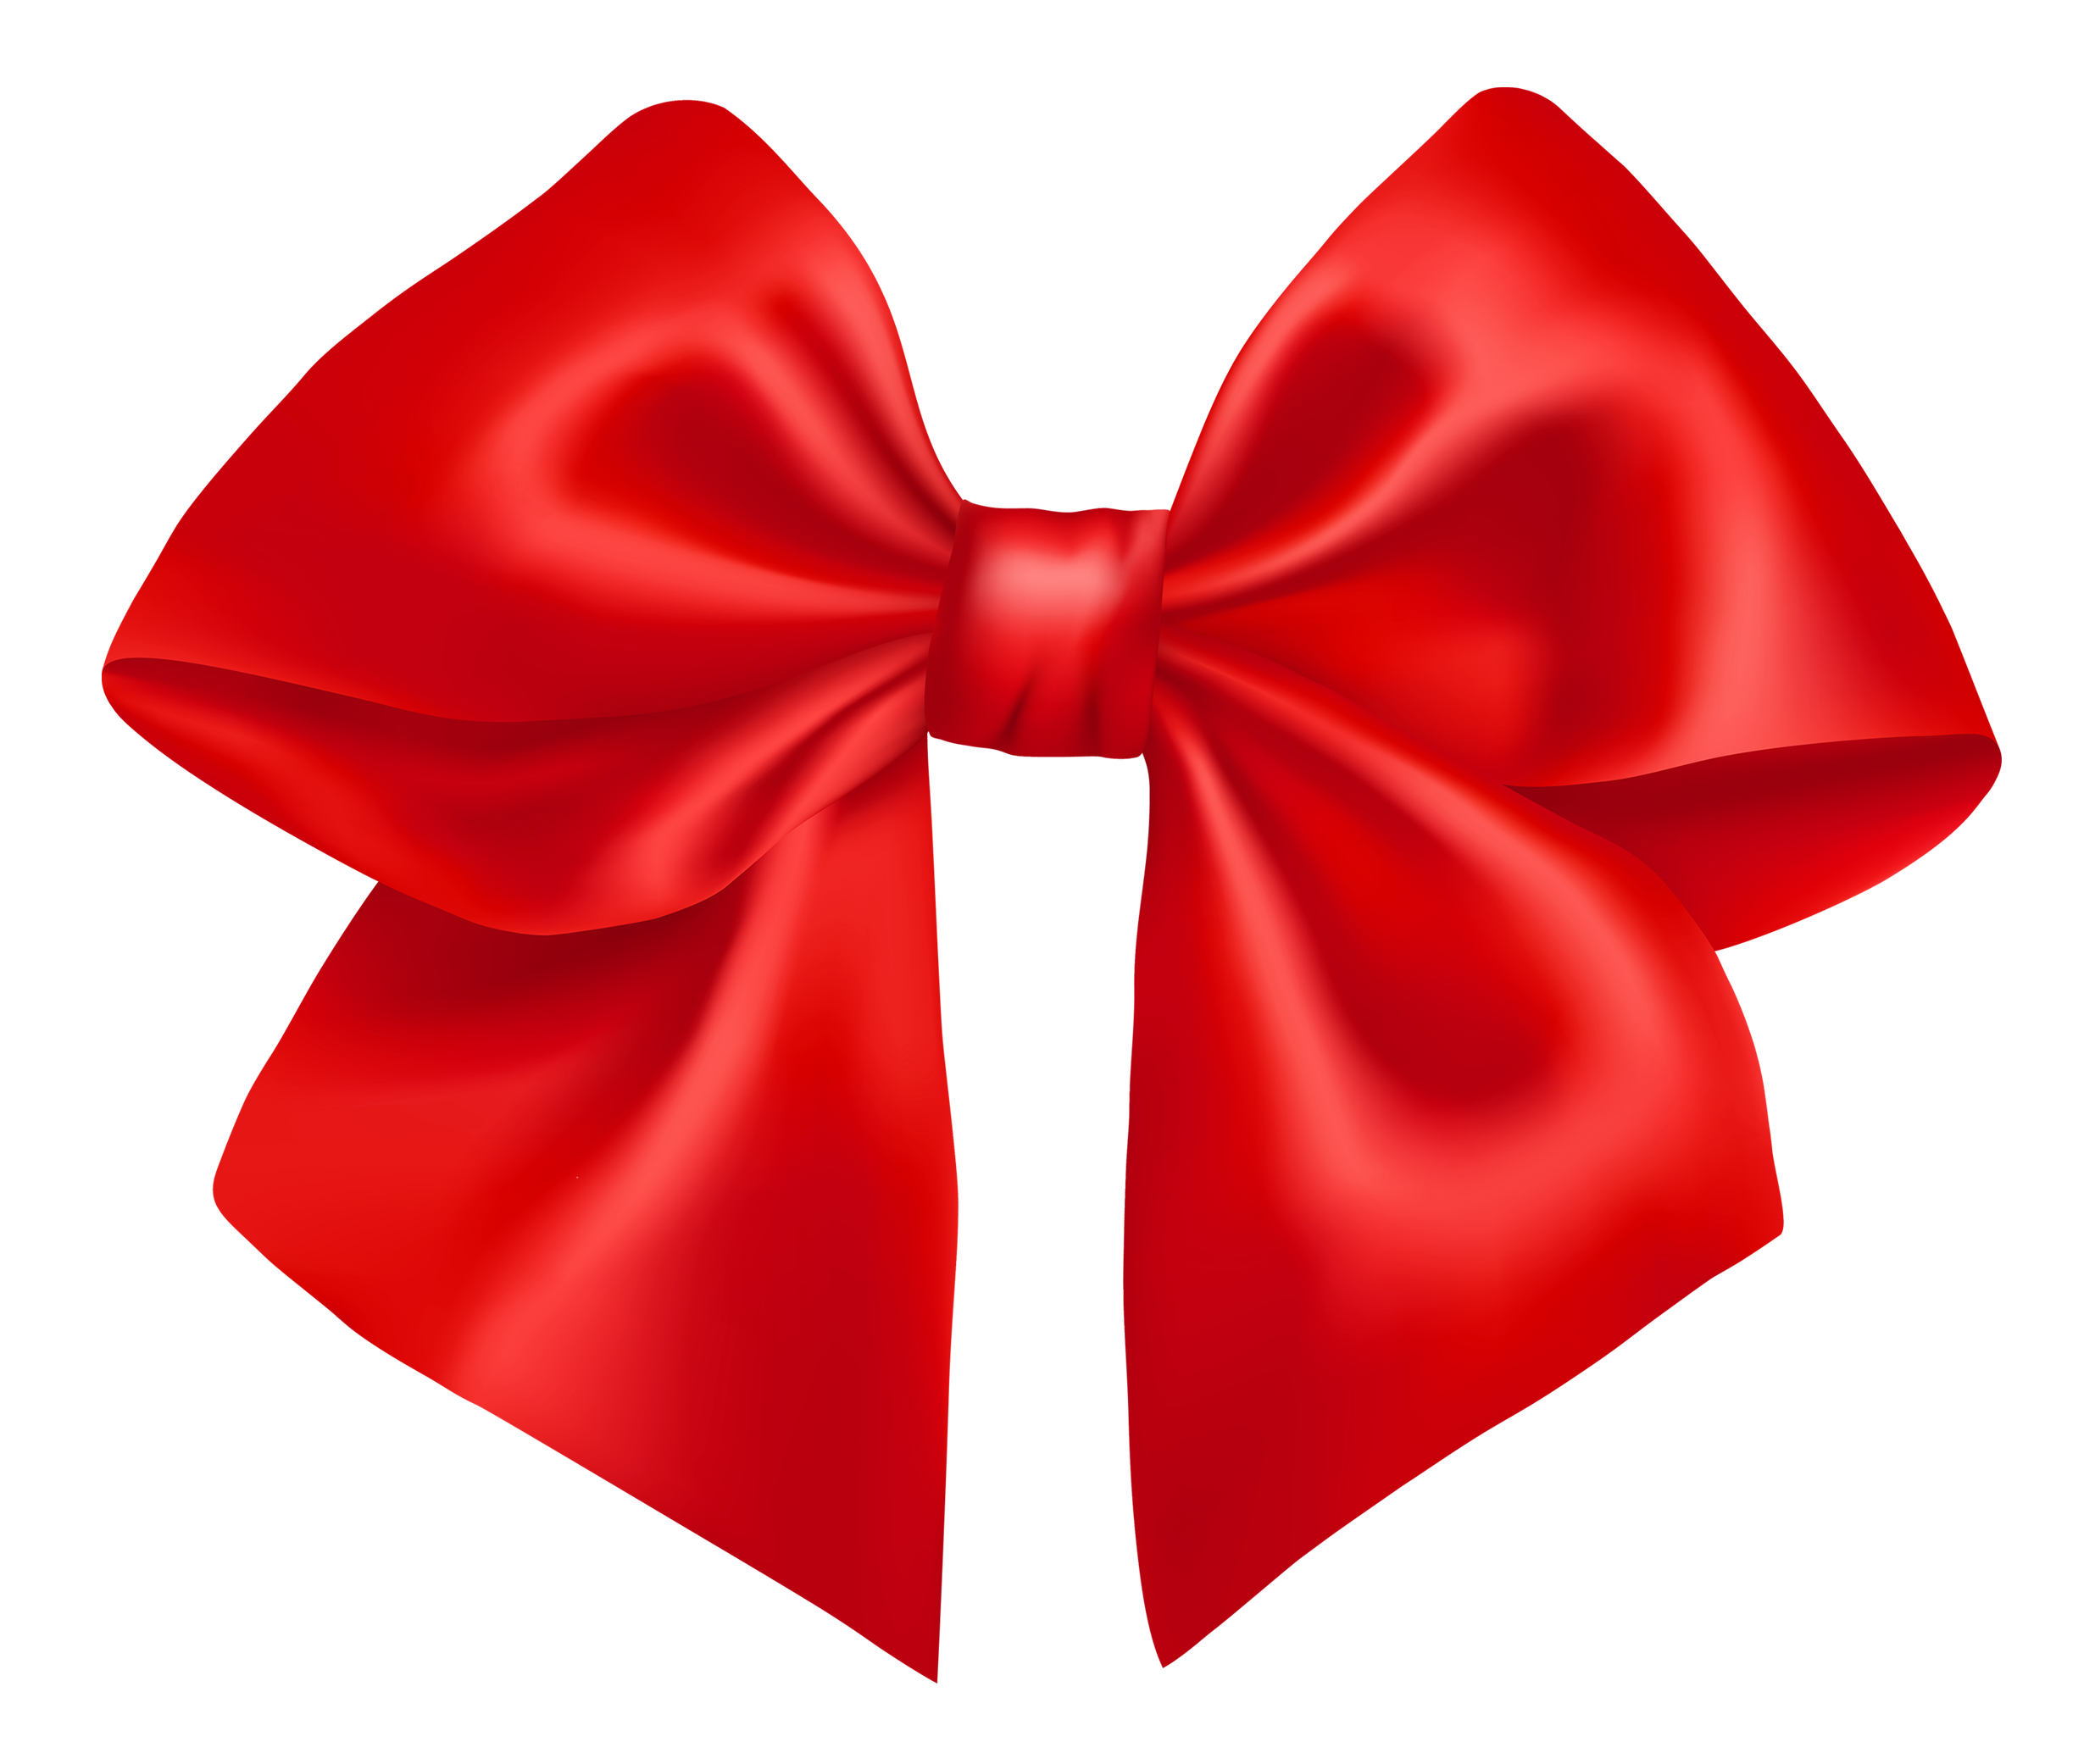 Red Bow PNG Transparent Image - PngPix